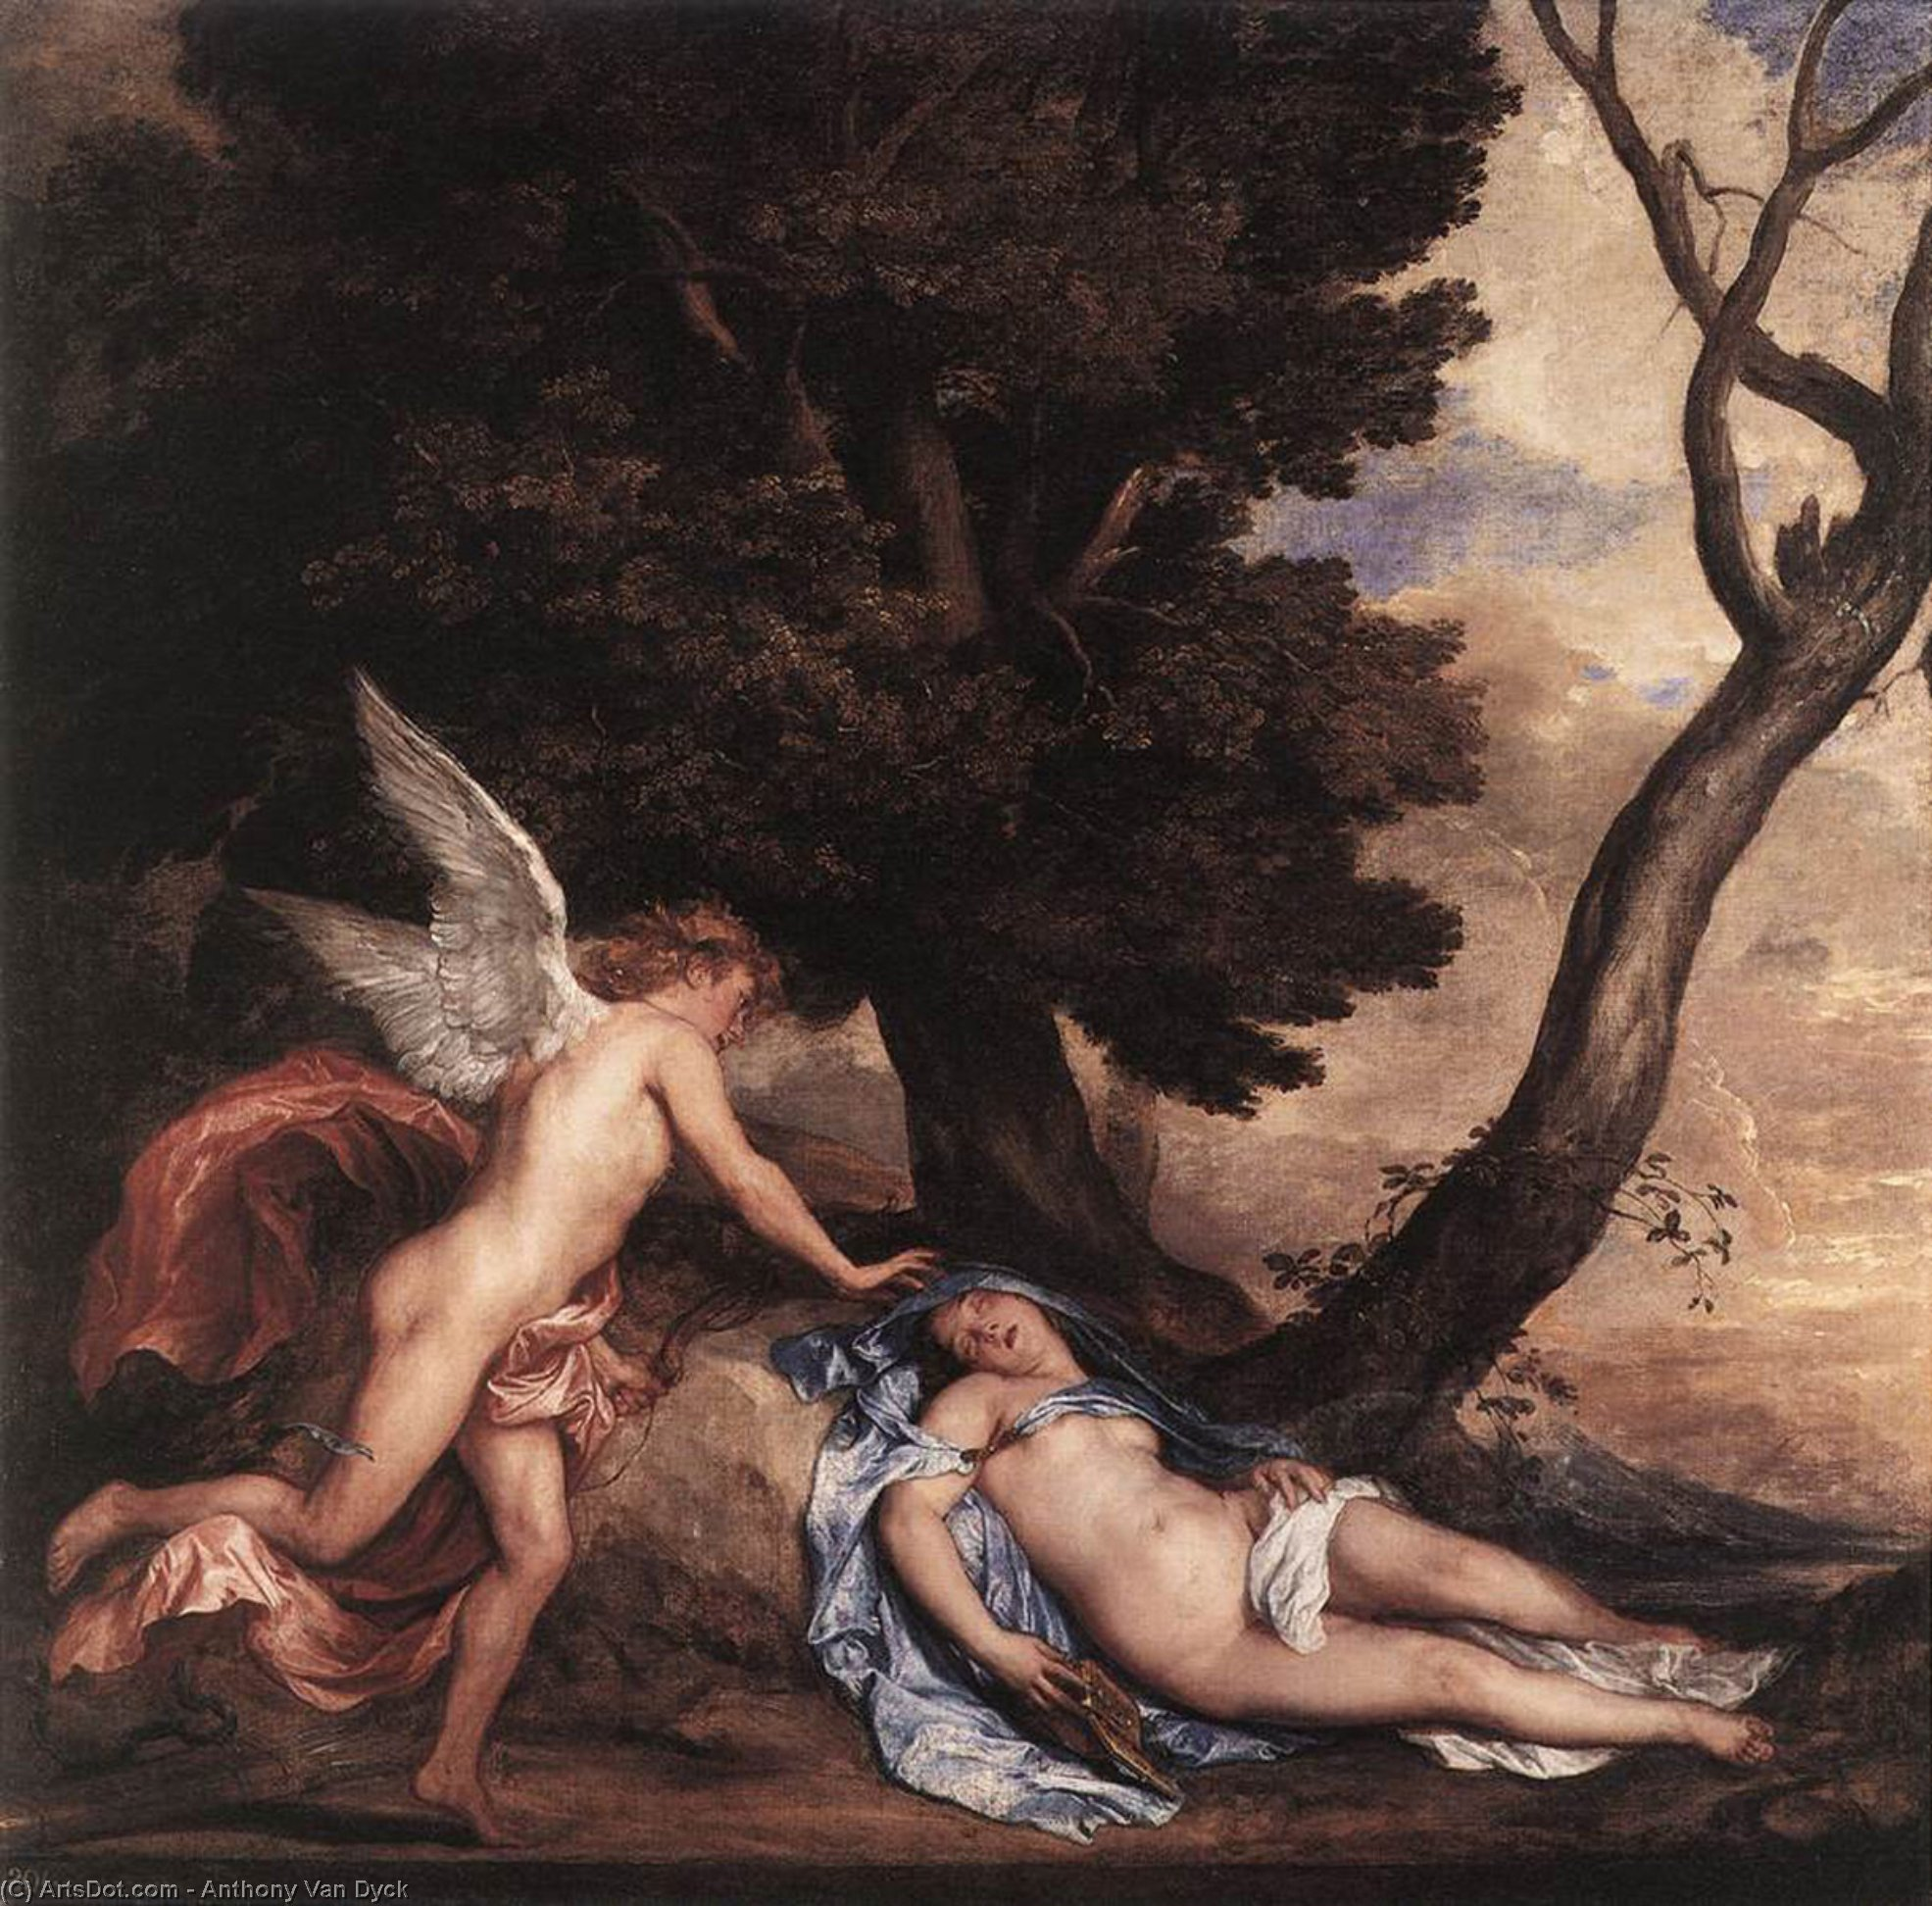 Wikioo.org - The Encyclopedia of Fine Arts - Painting, Artwork by Anthony Van Dyck - Cupid and Psyche